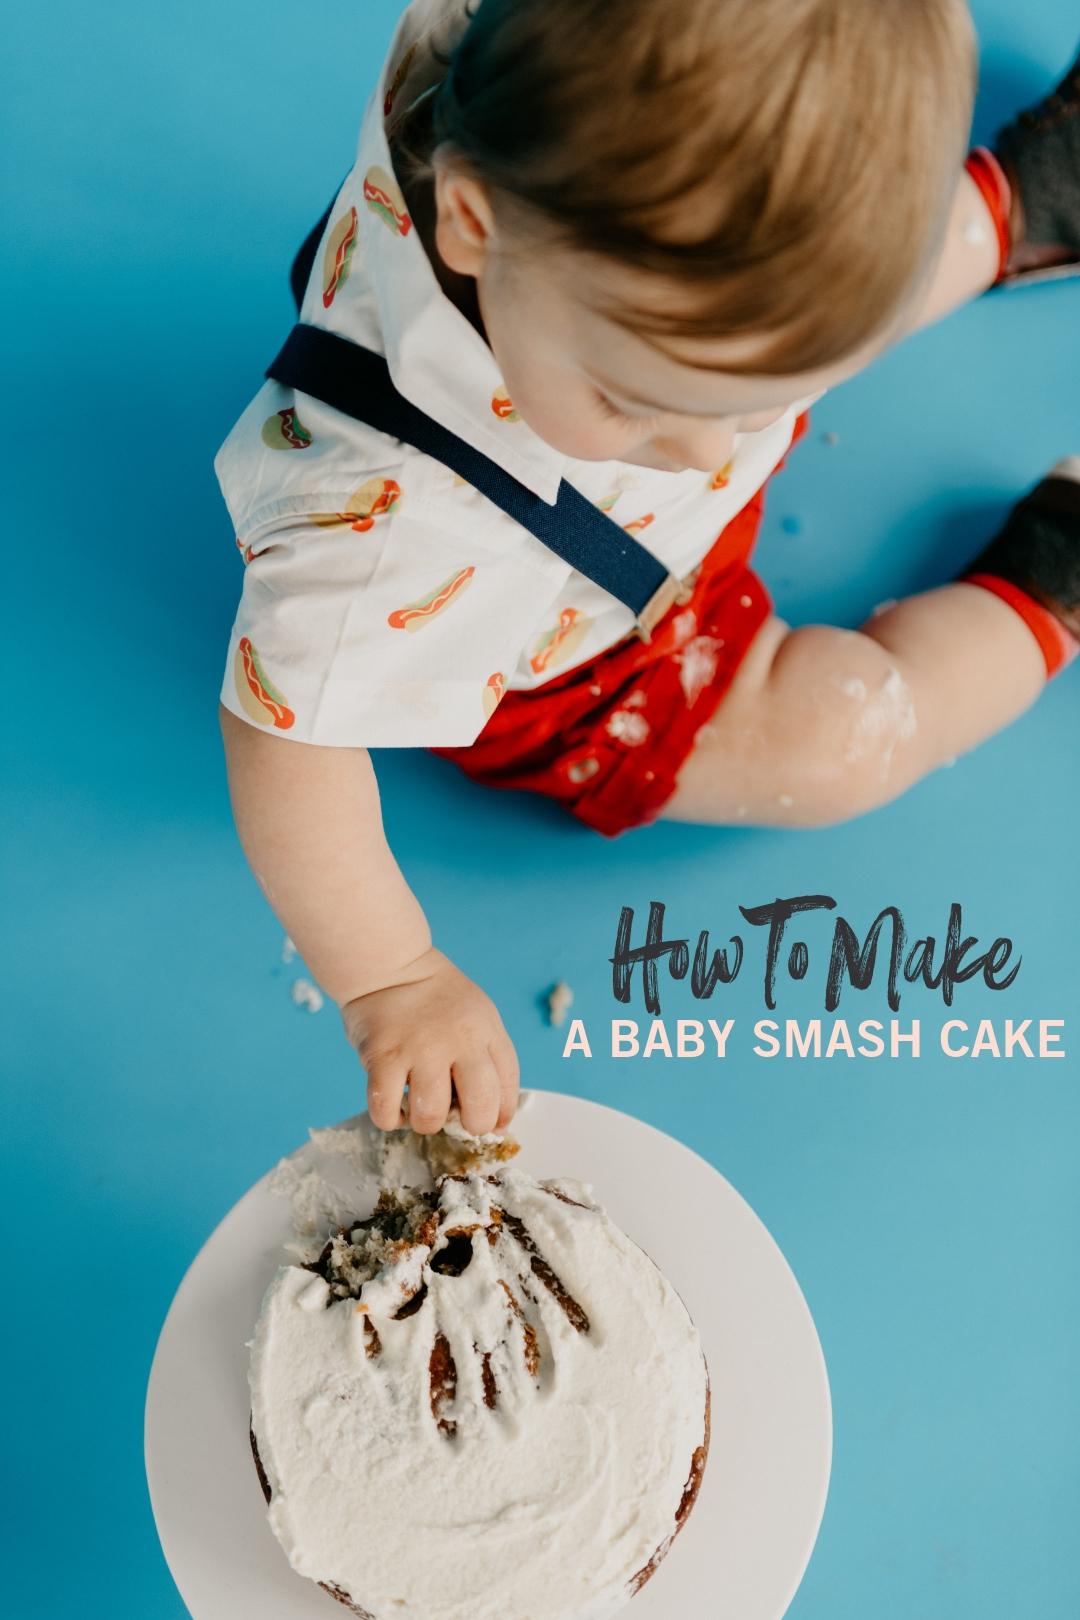 Wondrous How To Make A Baby Smash Cake A Simple 1St Birthday Party Sweetphi Birthday Cards Printable Riciscafe Filternl